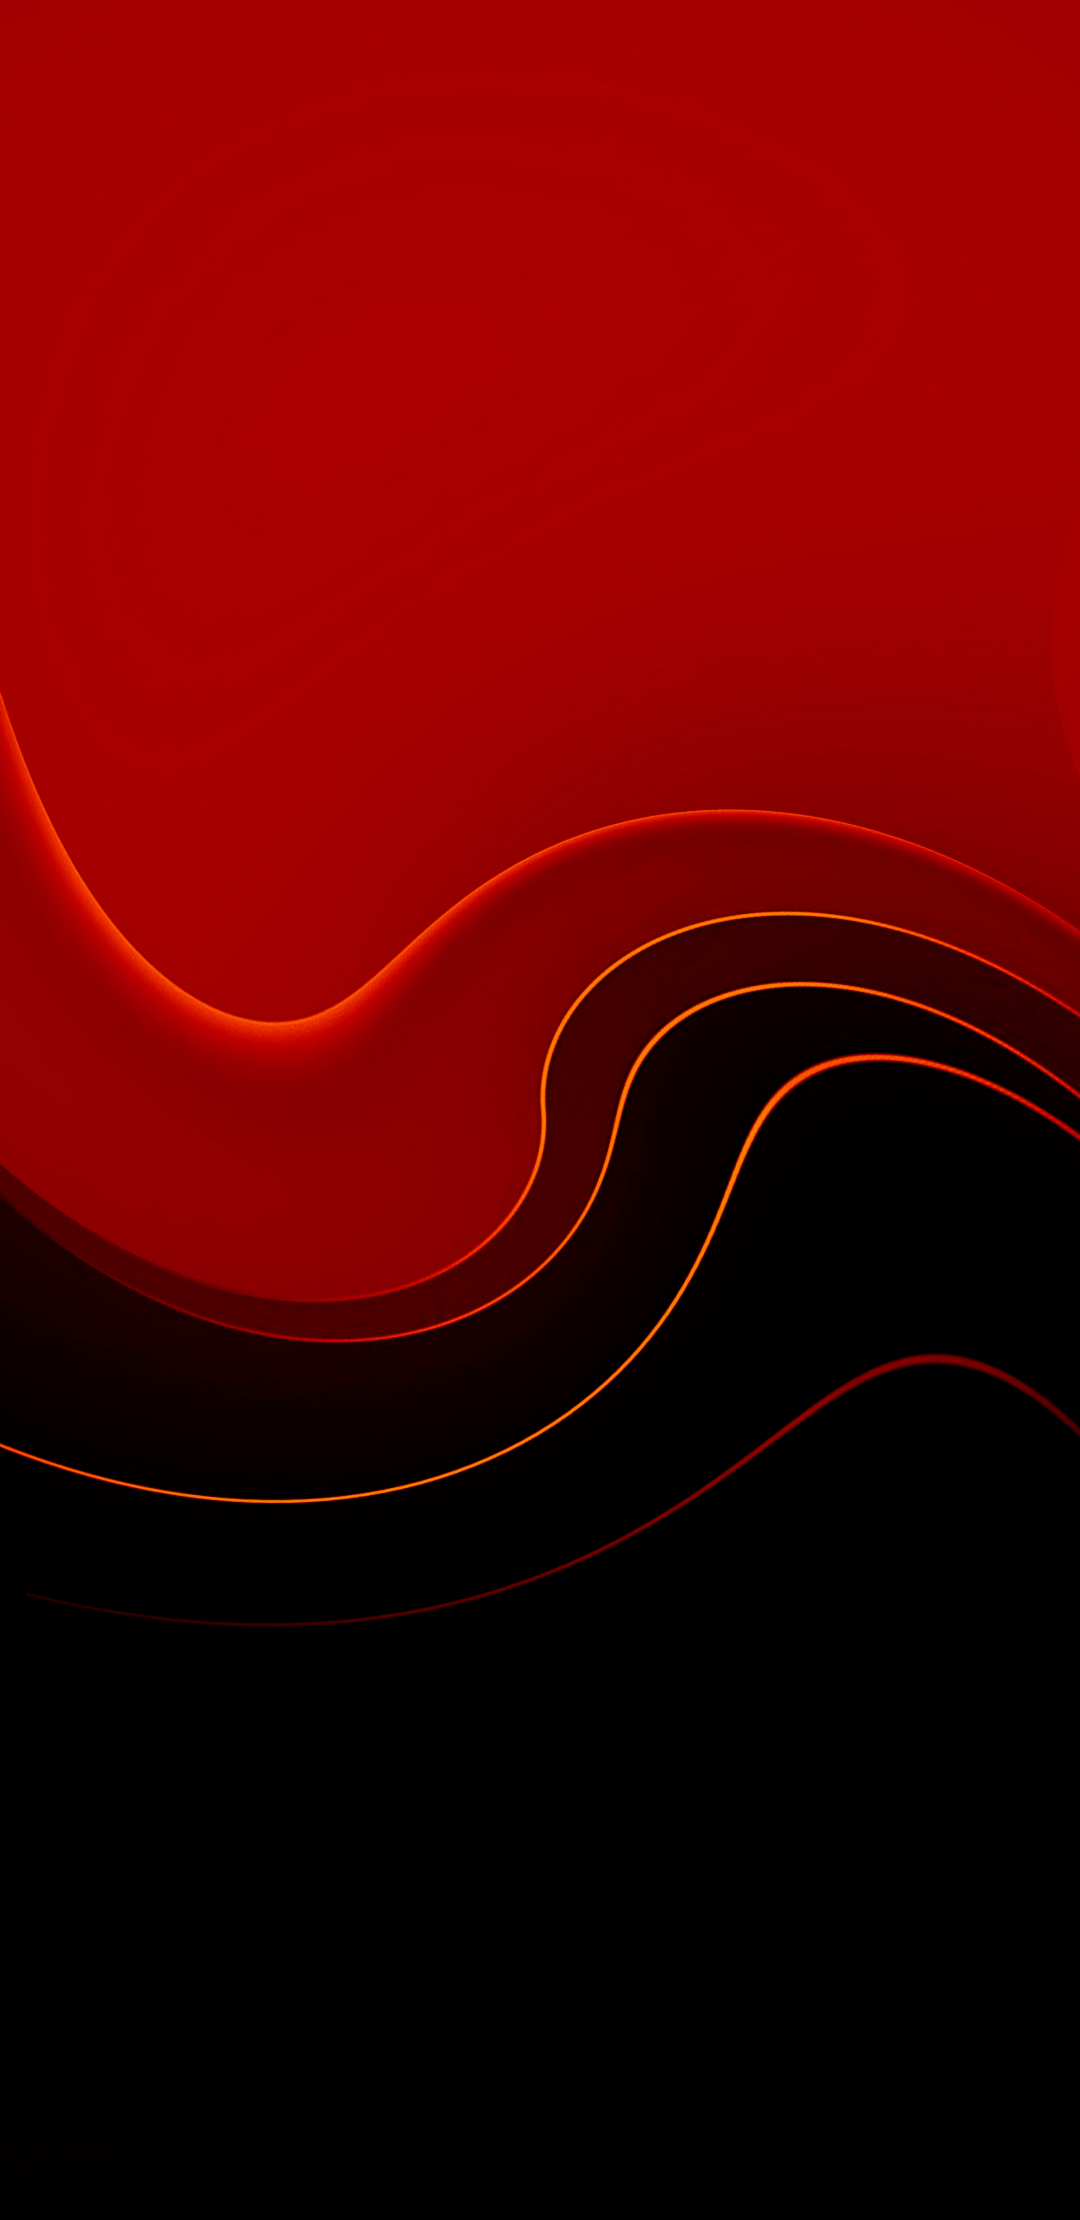 Red and Black [1080x2220] : Amoledbackgrounds